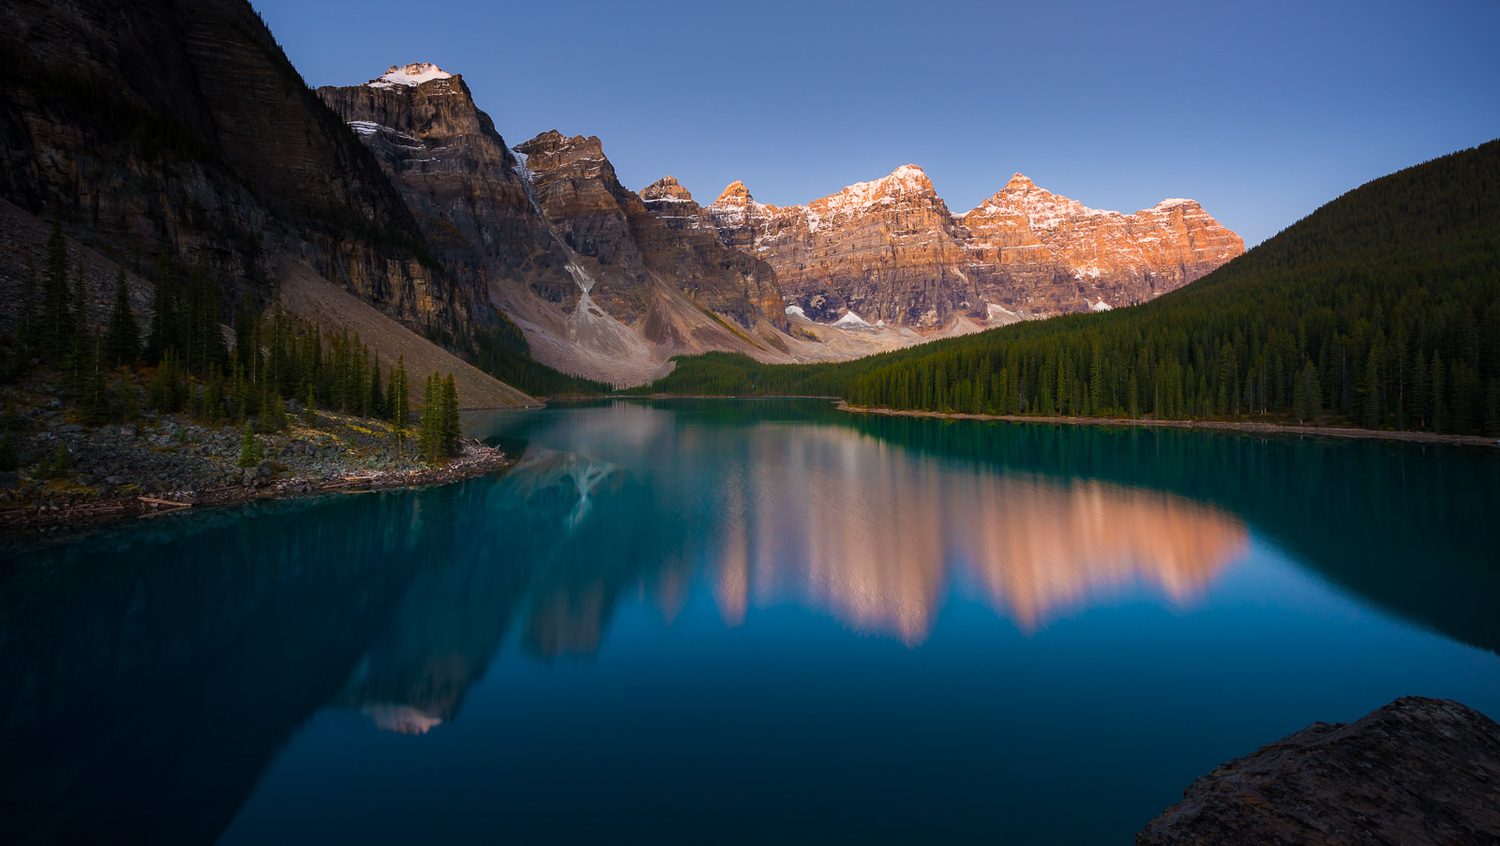 muench-workshops-canadian-rockies-marc-muench-4.jpg